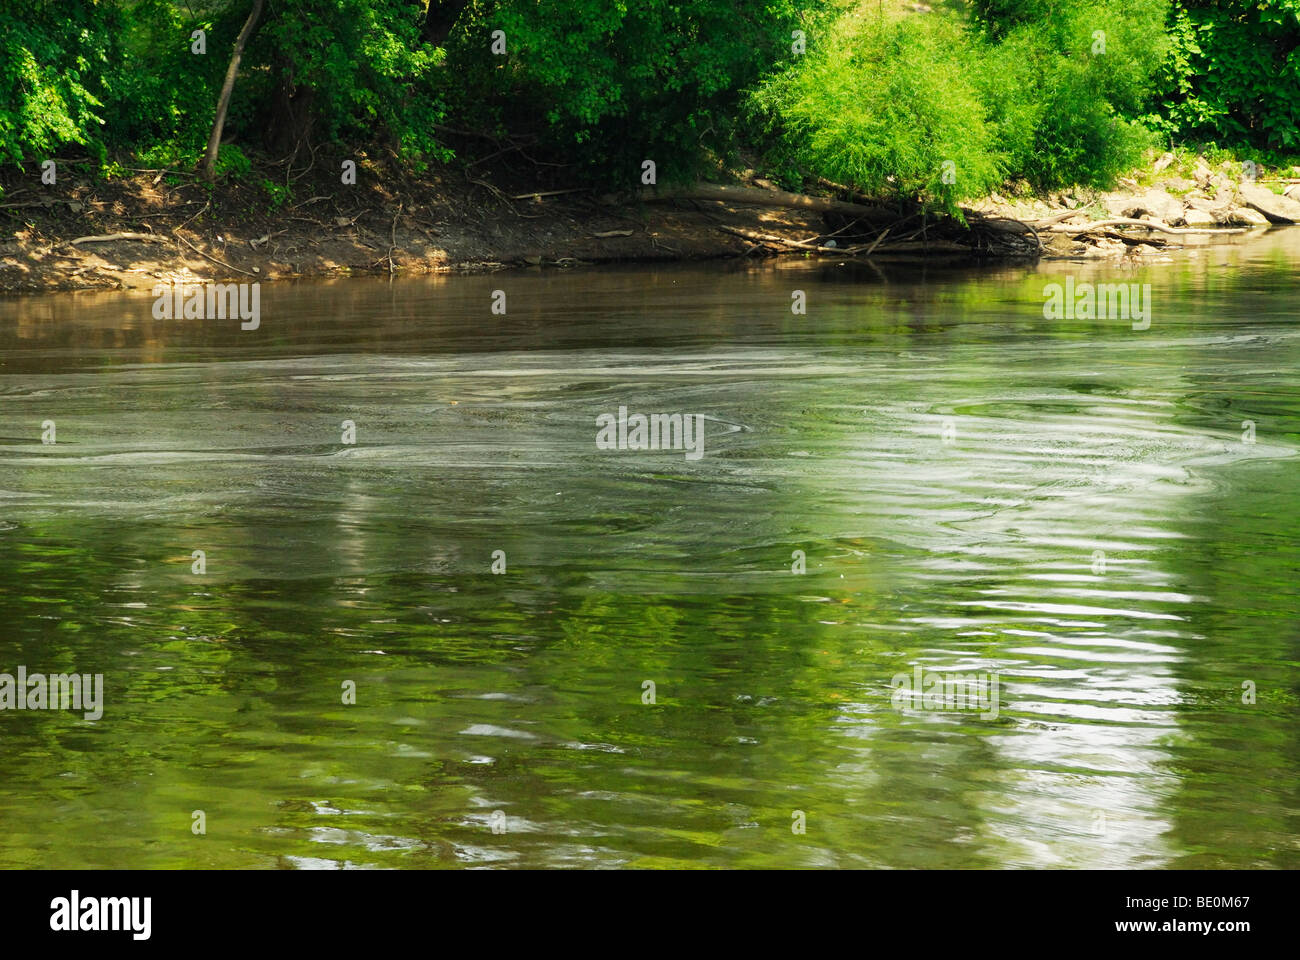 Pollen or scum floating on the Muskingum river in Zanesville Ohio. - Stock Image